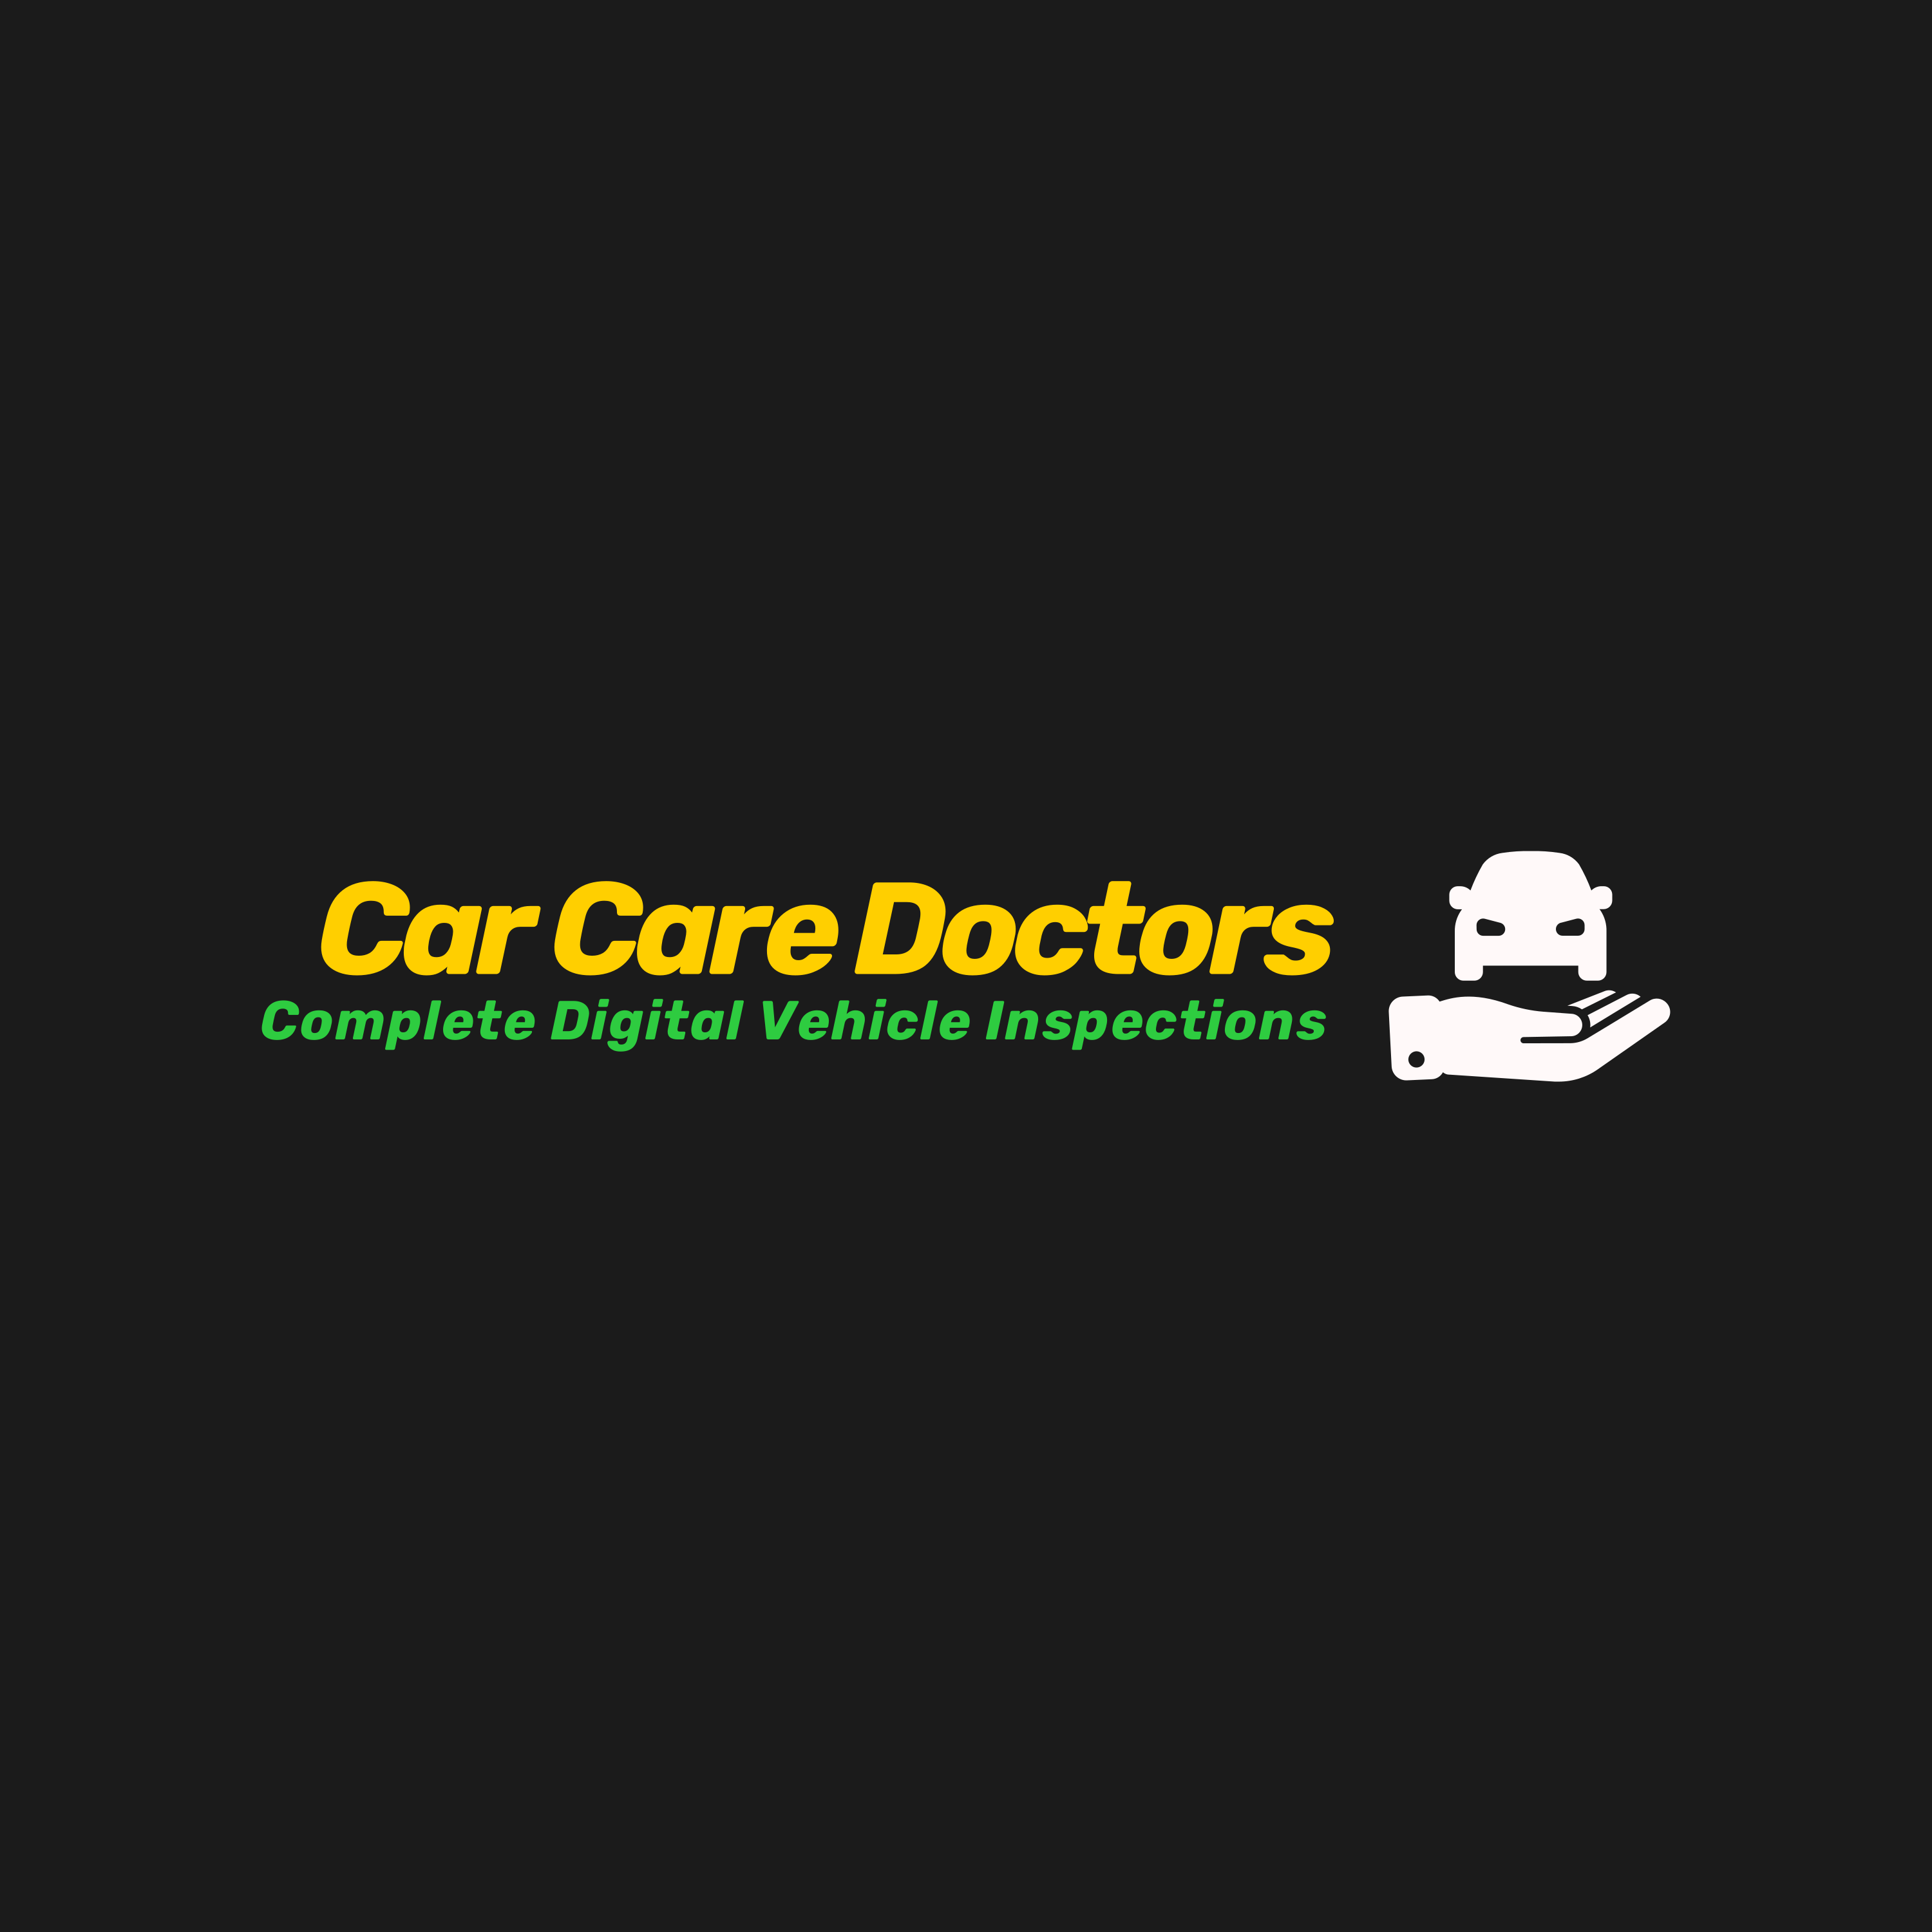 Car Care Doctors